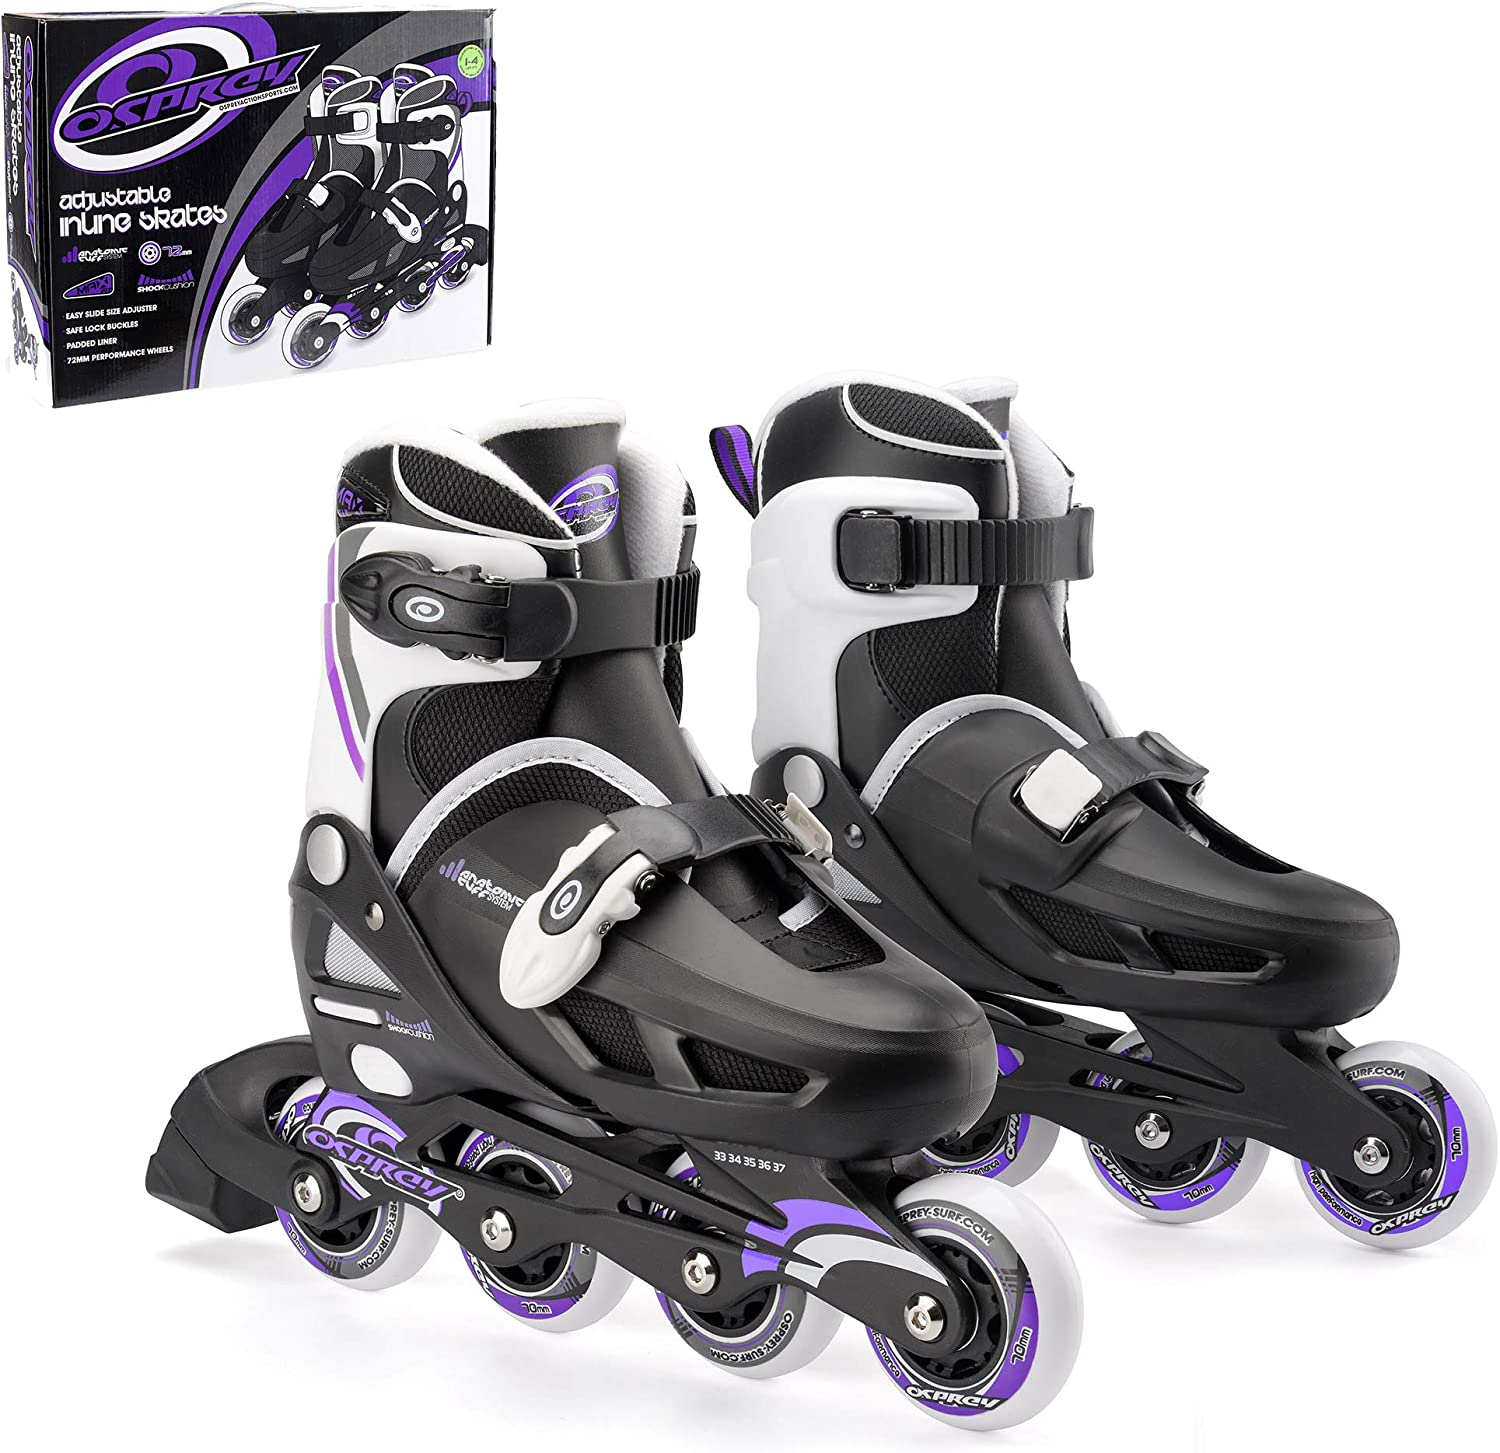 Osprey Kids Roller Blades, Adjustable Inline Skates for Boys and Girls with Safe Lock Straps / UK